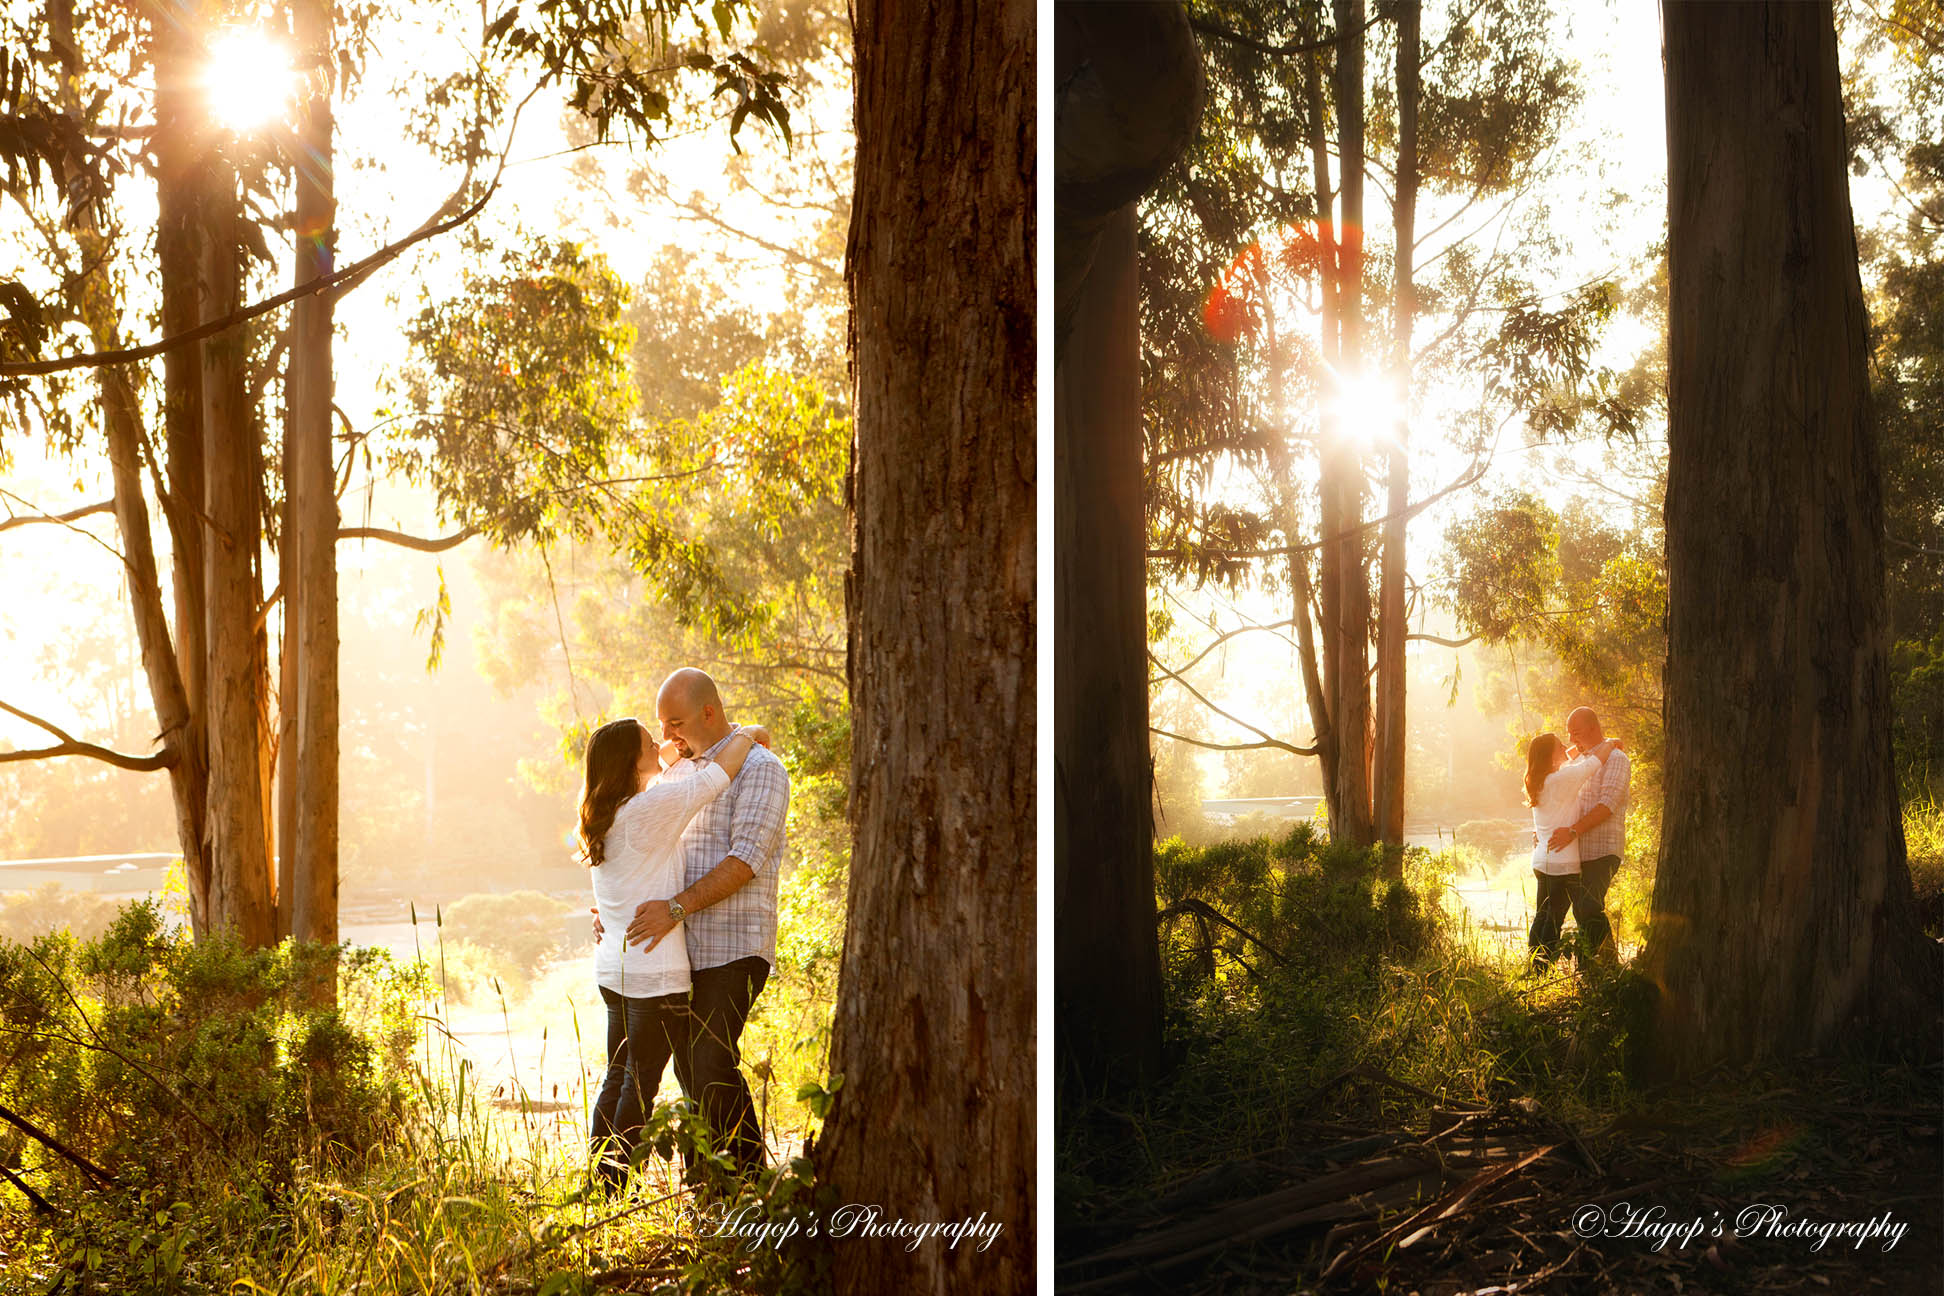 composite photos for their engagement album